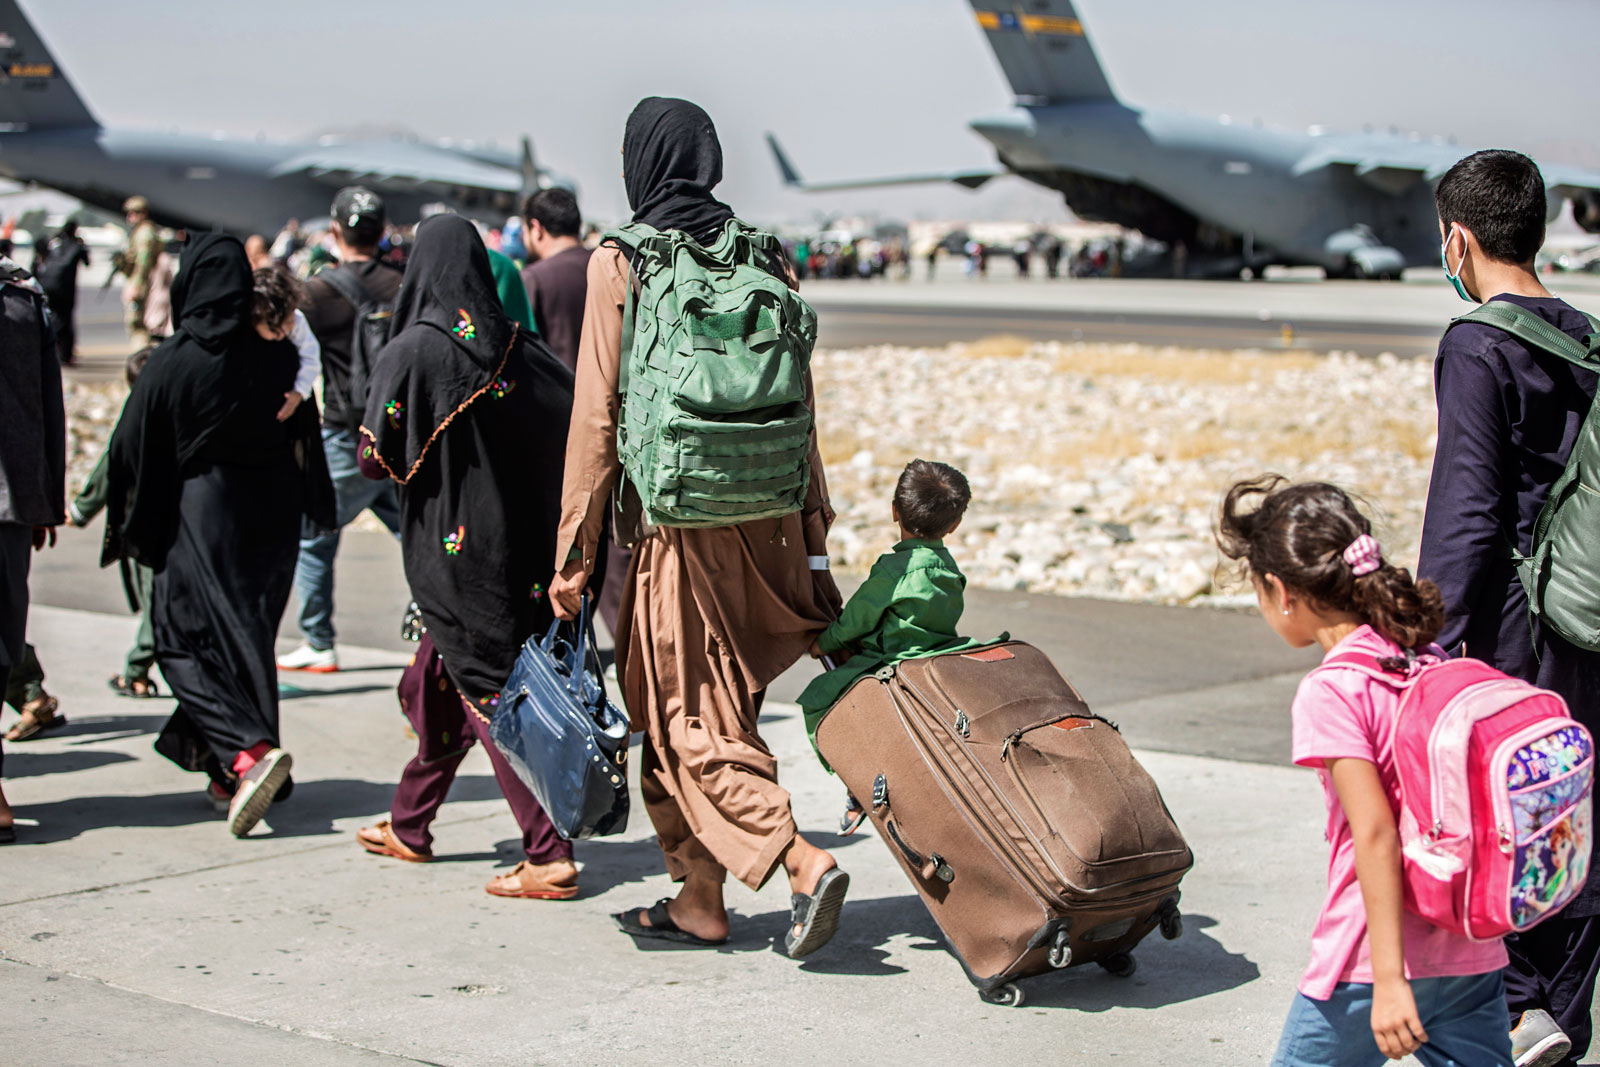 In this photo provided by the U.S. Marine Corps, families walk towards their flight during ongoing evacuations at Hamid Karzai International Airport, in Kabul, Afghanistan on August 24.